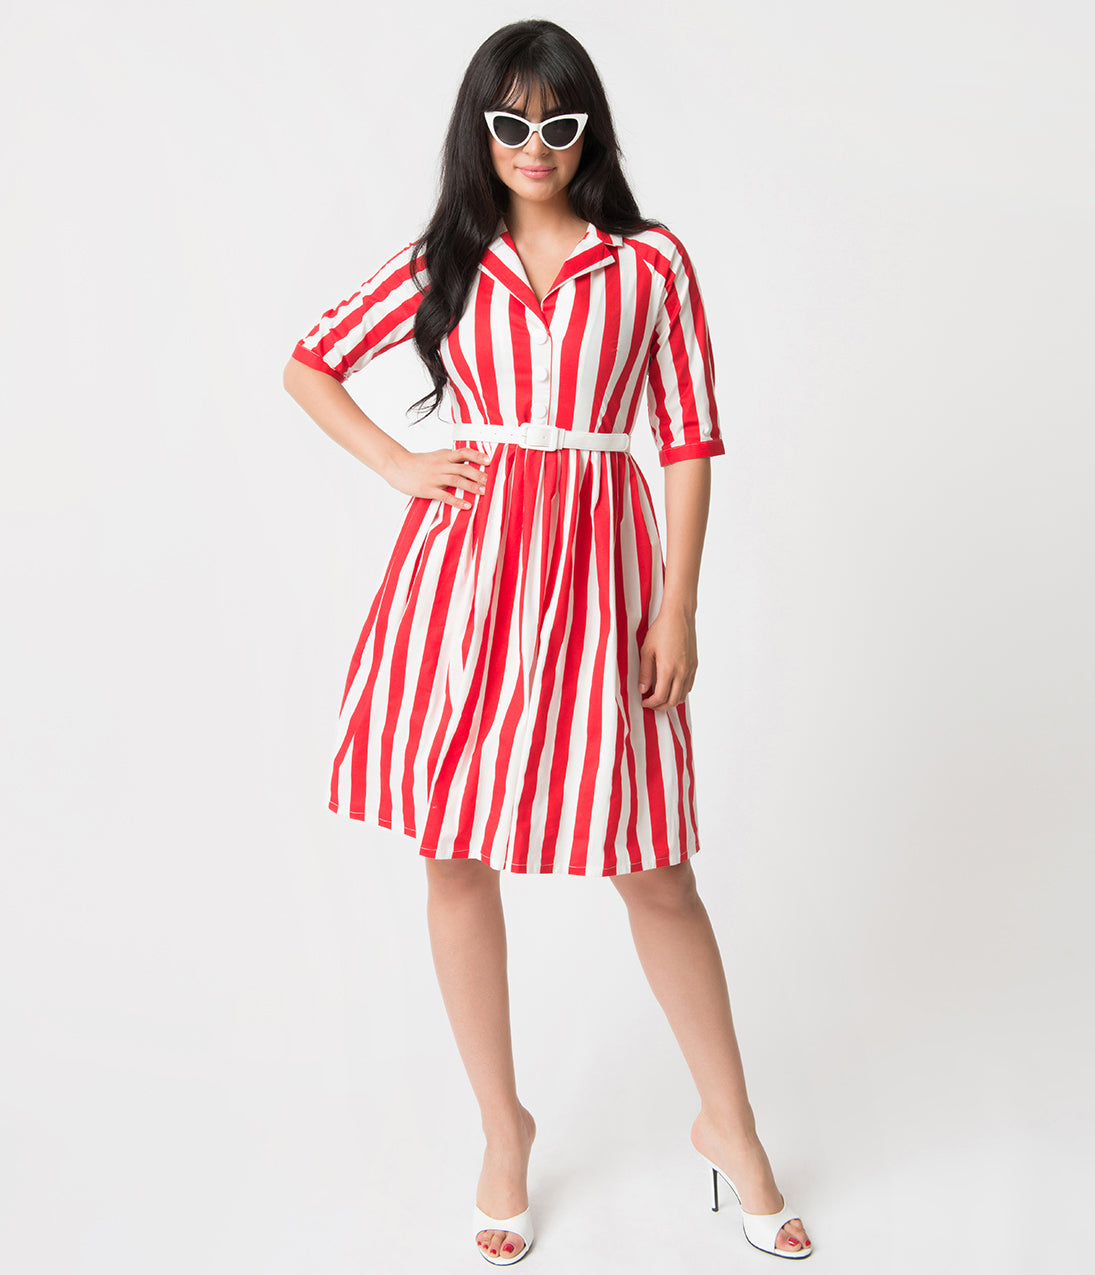 1950s Costumes- Poodle Skirts, Grease, Monroe, Pin Up, I Love Lucy 1950S Style Red  White Stripe Patty Cotton Flare Dress $78.00 AT vintagedancer.com